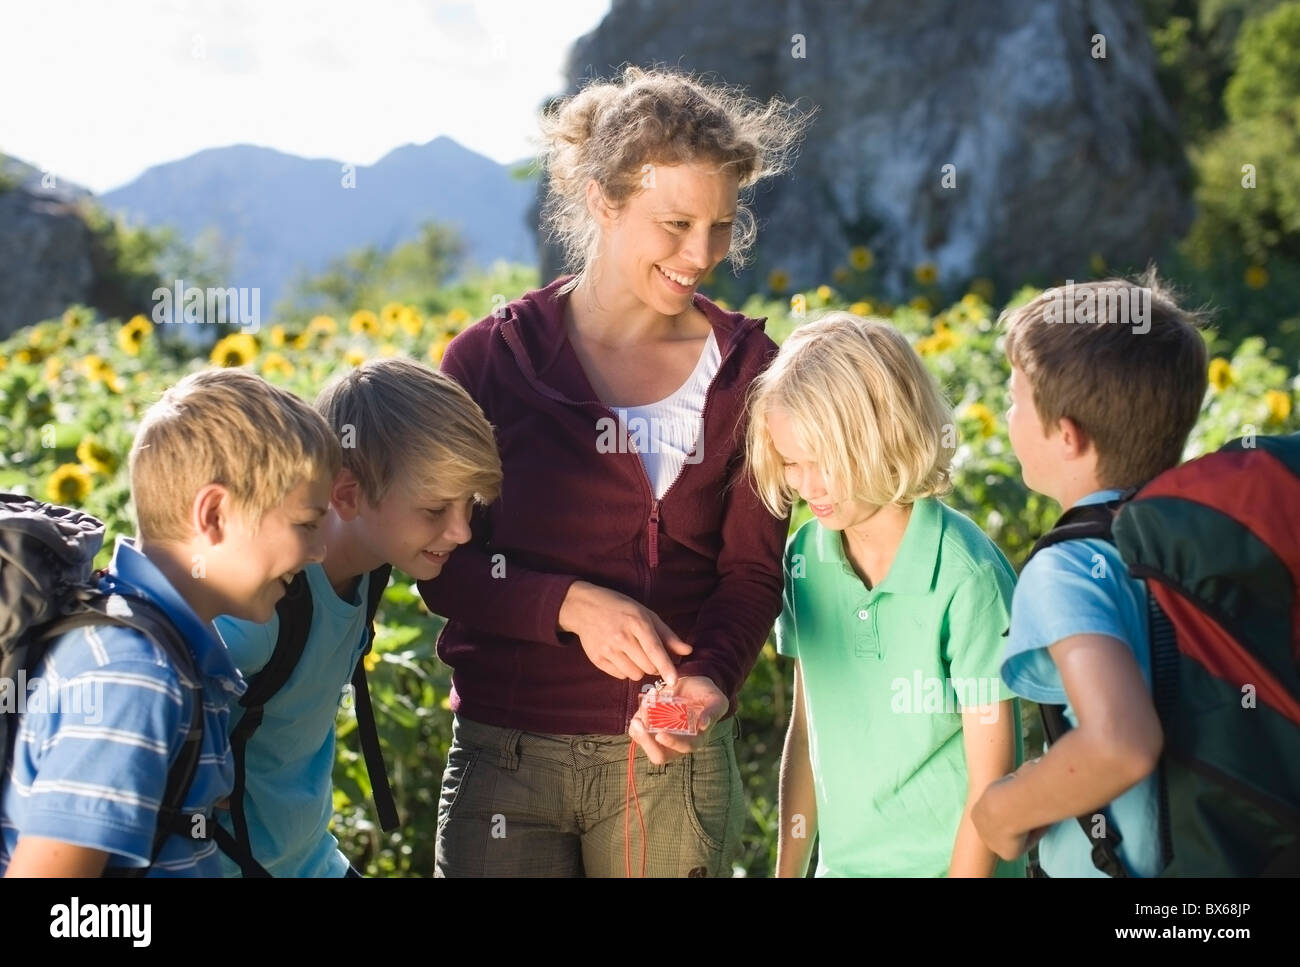 Woman explaining a compass to boys - Stock Image